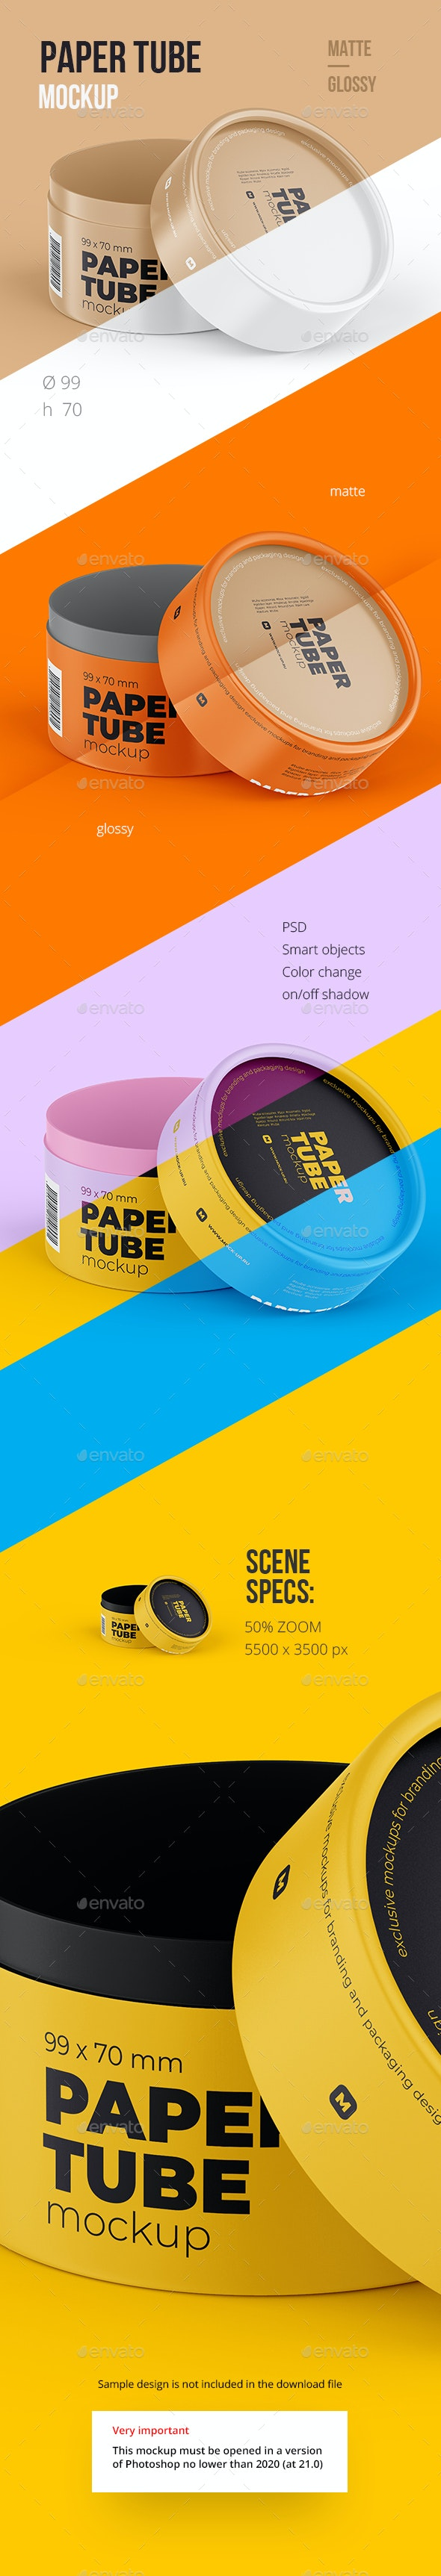 Opened Paper Tube Mockup 99x70mm - Food and Drink Packaging